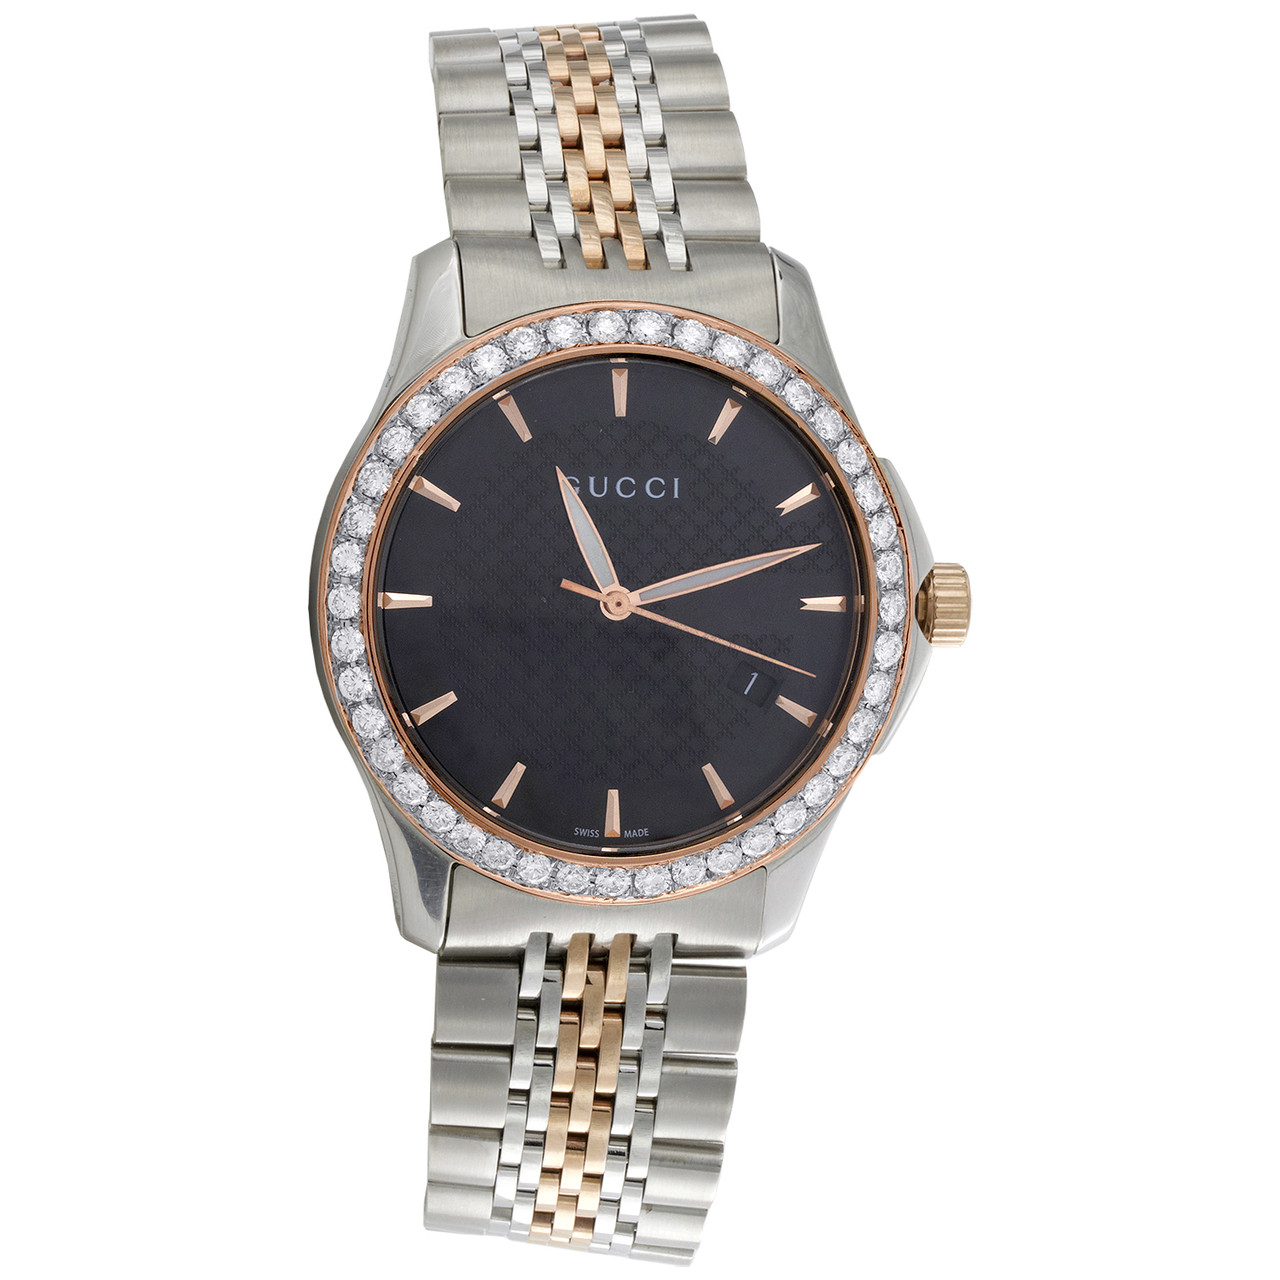 5f6a412b4bd ... Gucci Ya126410 Diamond Watch G-Timeless 38mm Two Tone Rose   S. Steel  PVD 2 CT. Image 1